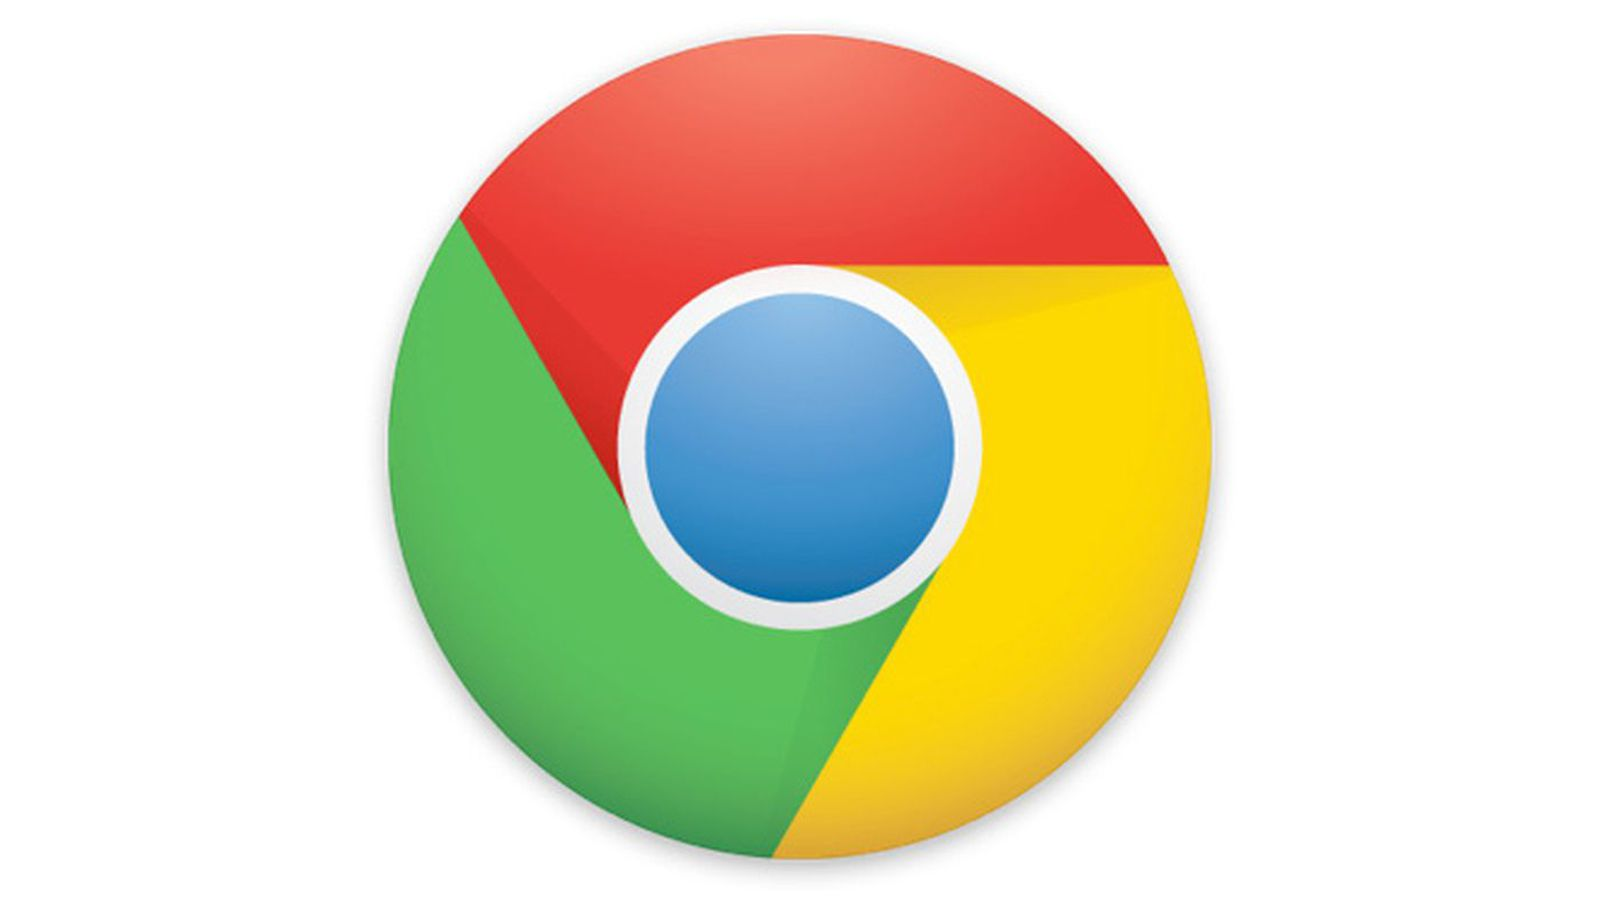 Google Touts Chrome 89 Memory Savings That 'Keep Your Mac Cooler' While Browsing